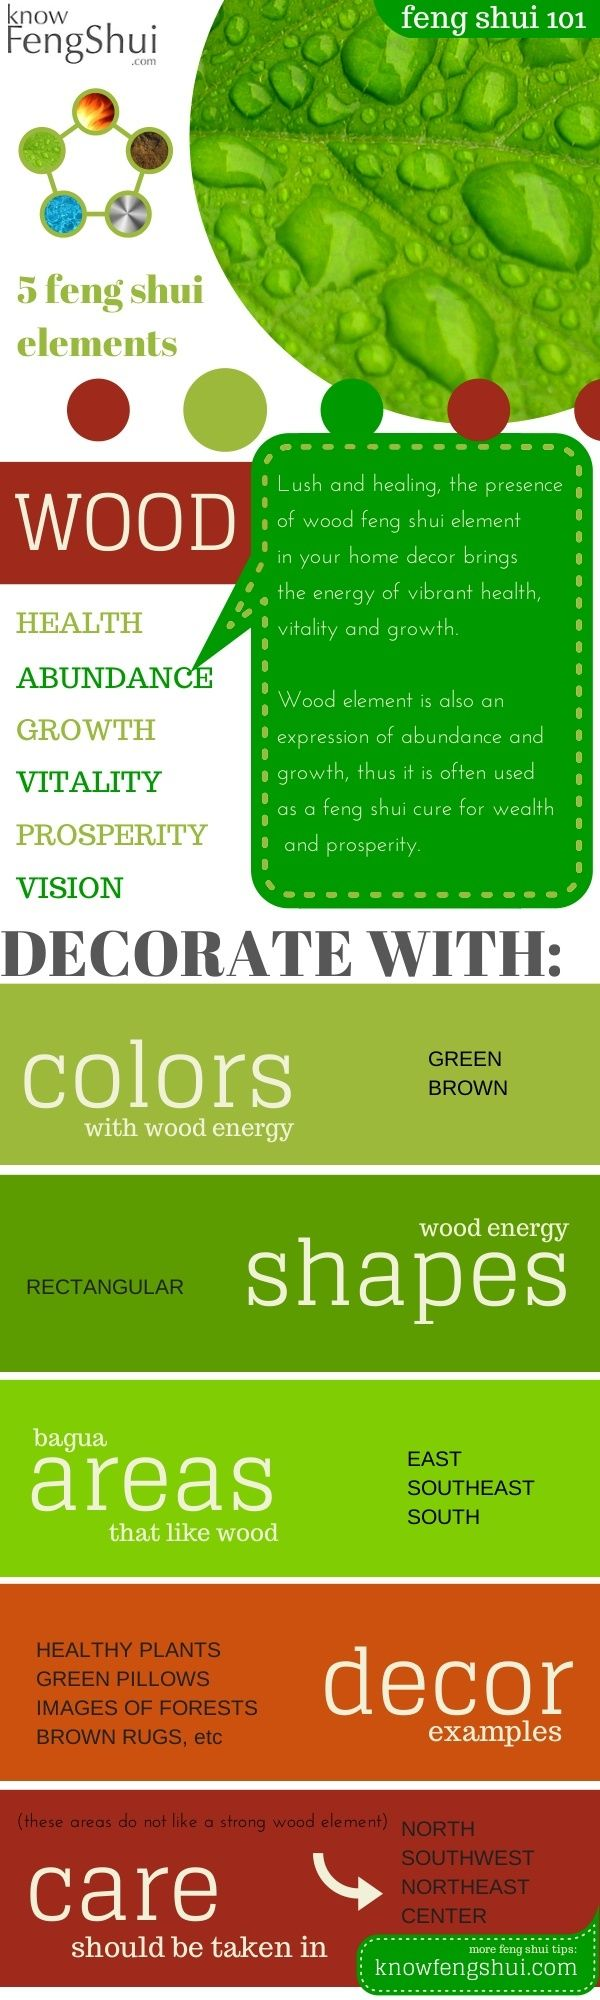 1000 Images About Feng Shui In The Home On Pinterest Feng Shui